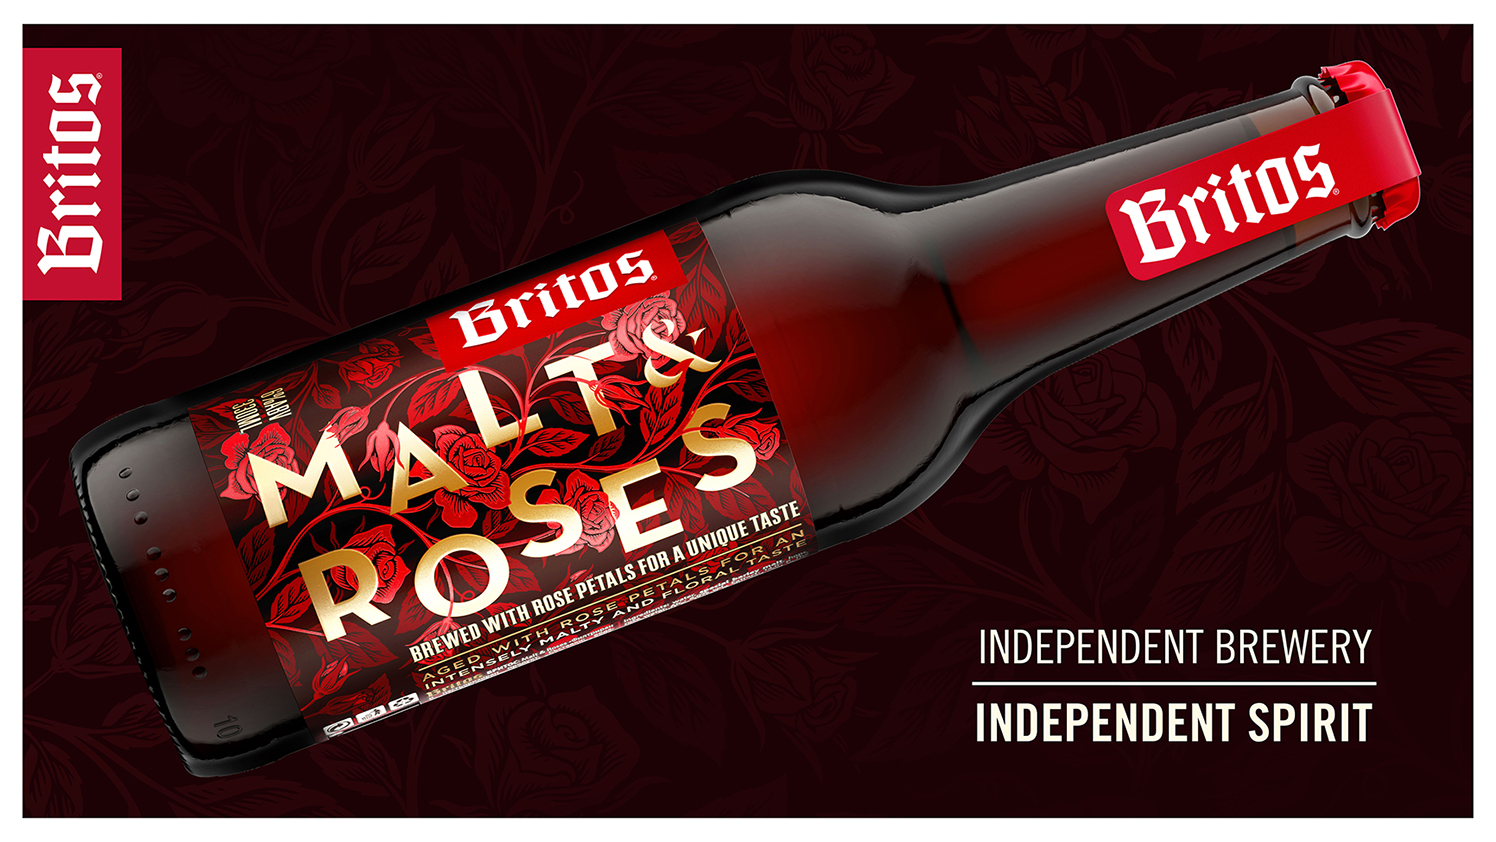 Agence Monogram Design New Premium Beer Packaging Design for Malt and Roses